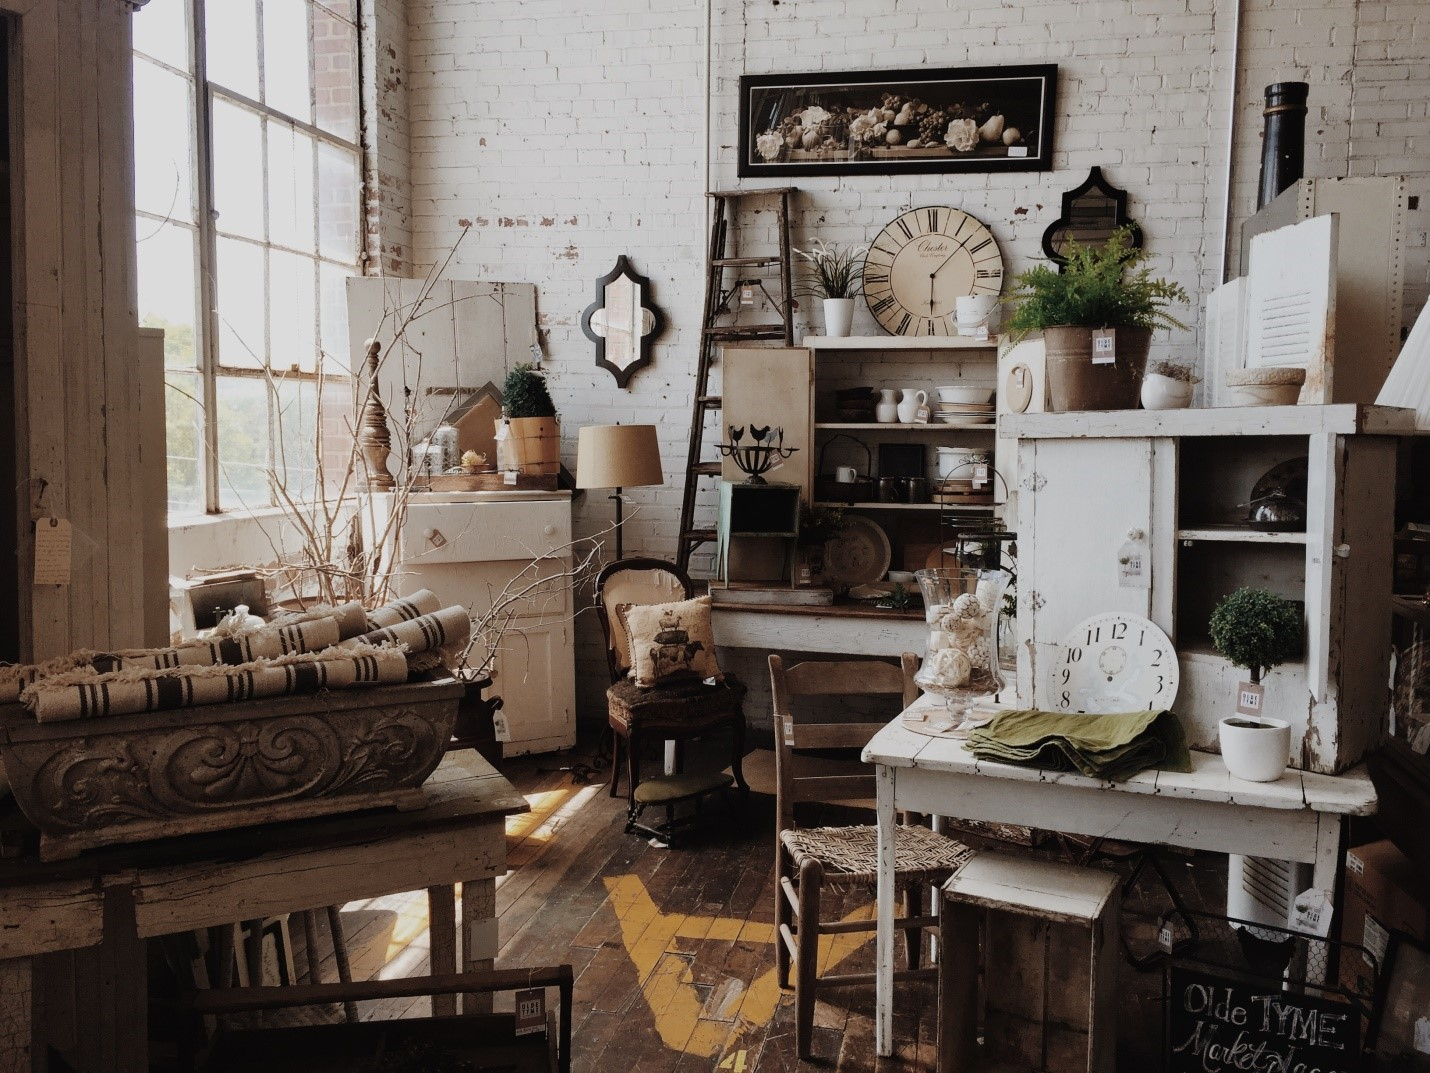 Store Furniture For Long-Term